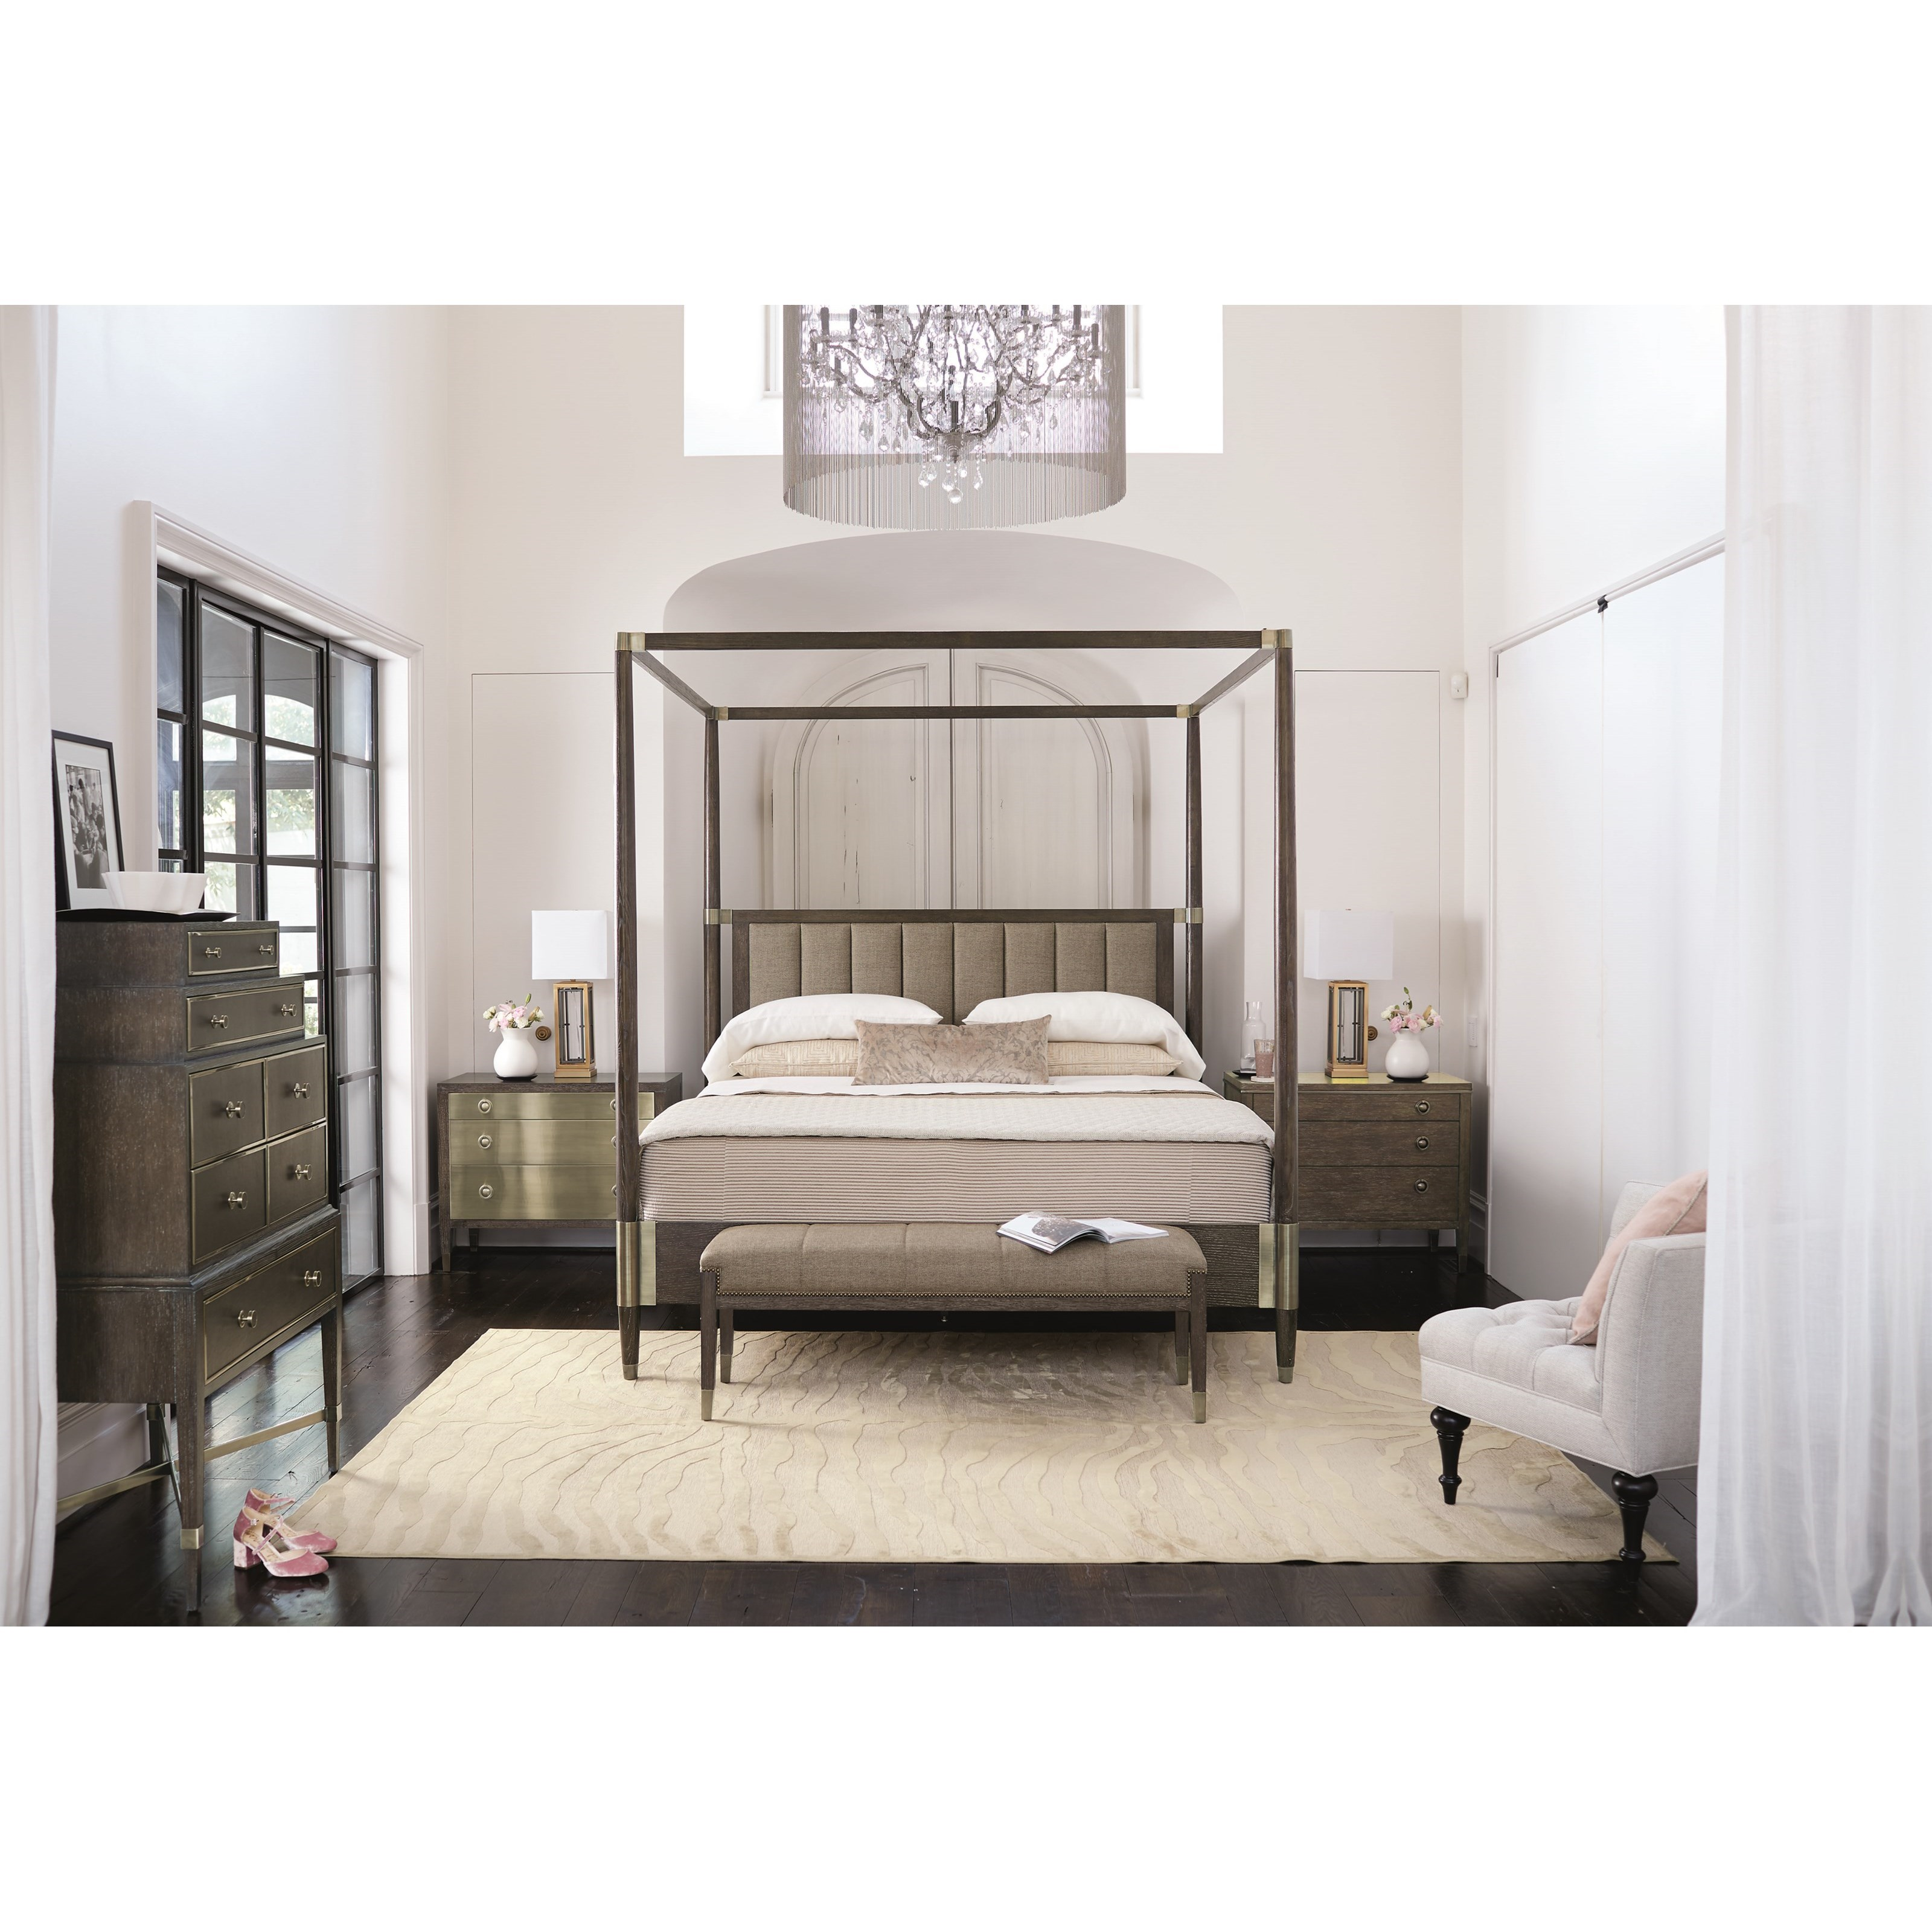 Clarendon King Bedroom Group at Williams & Kay